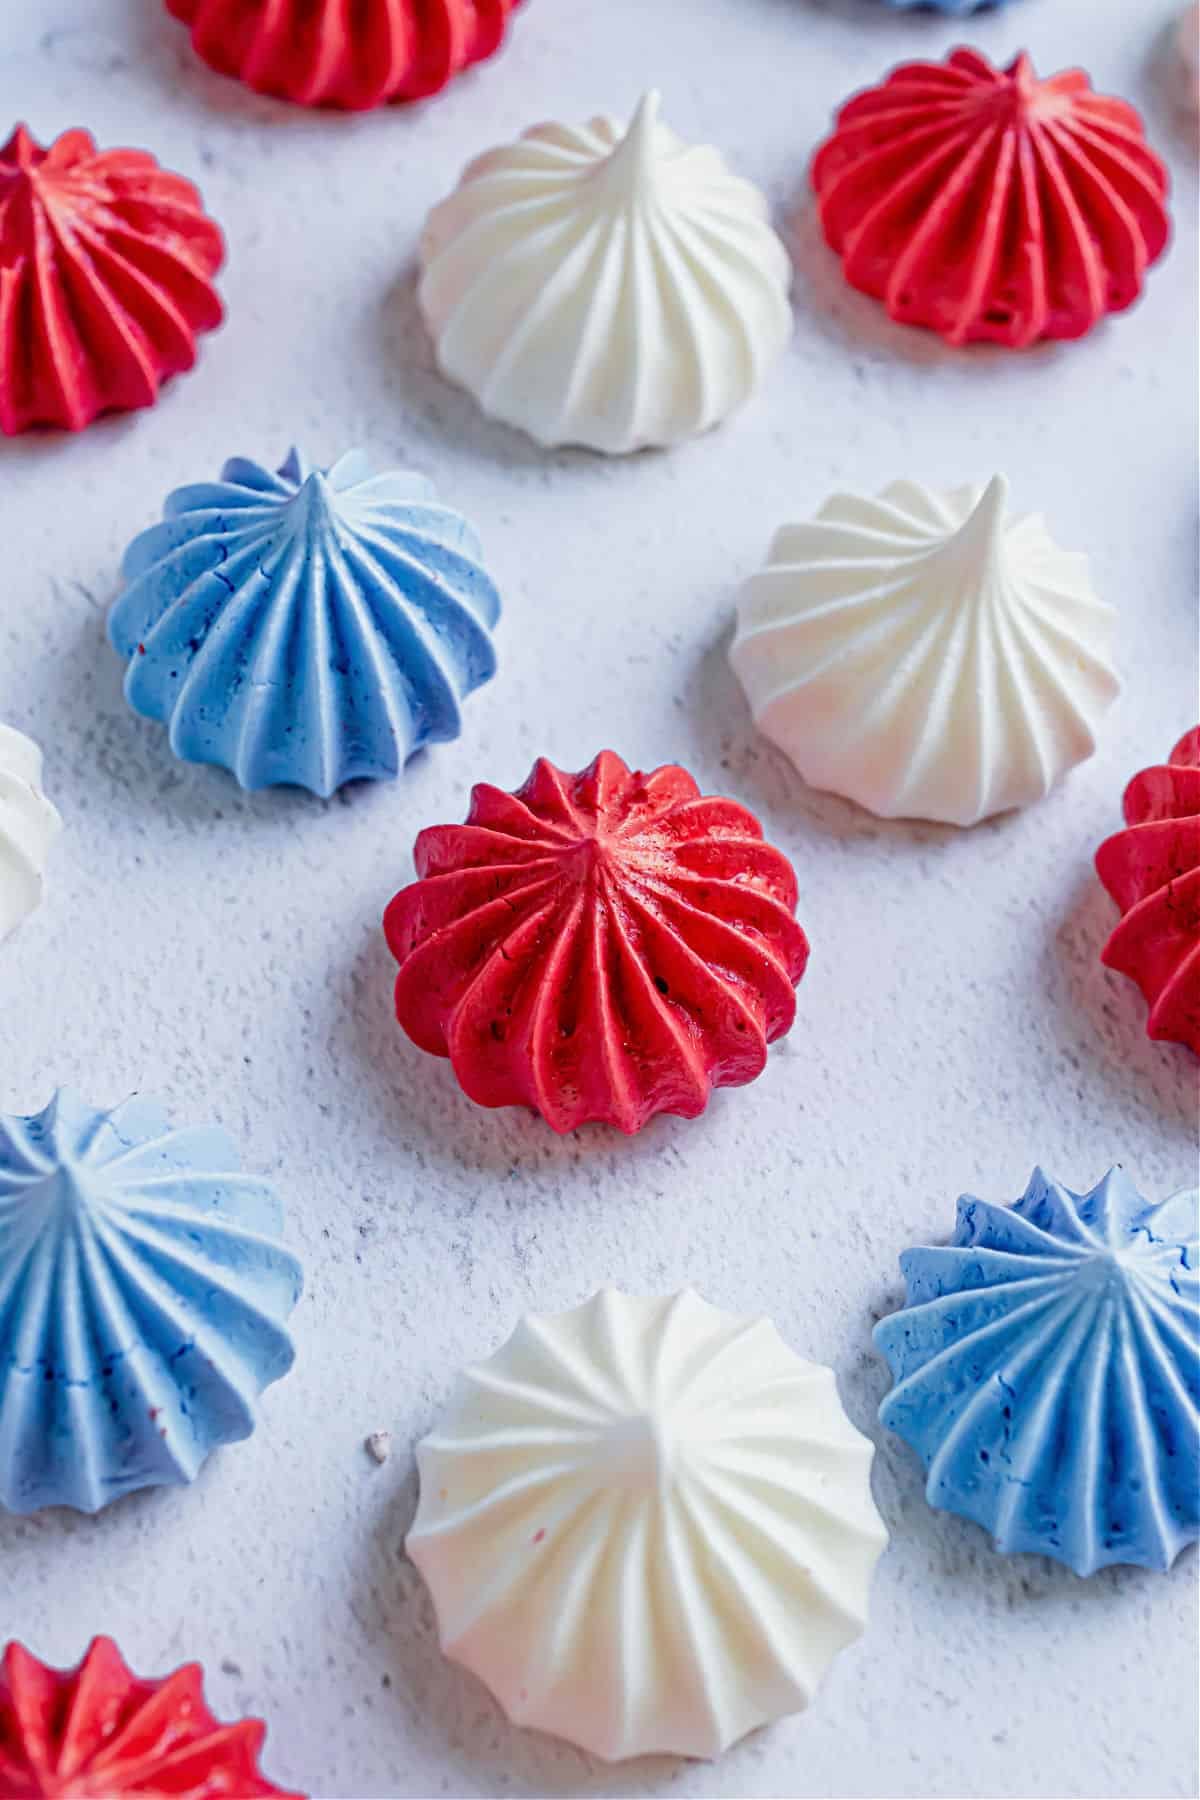 Red white and blue meringue cookies on parchment paper.